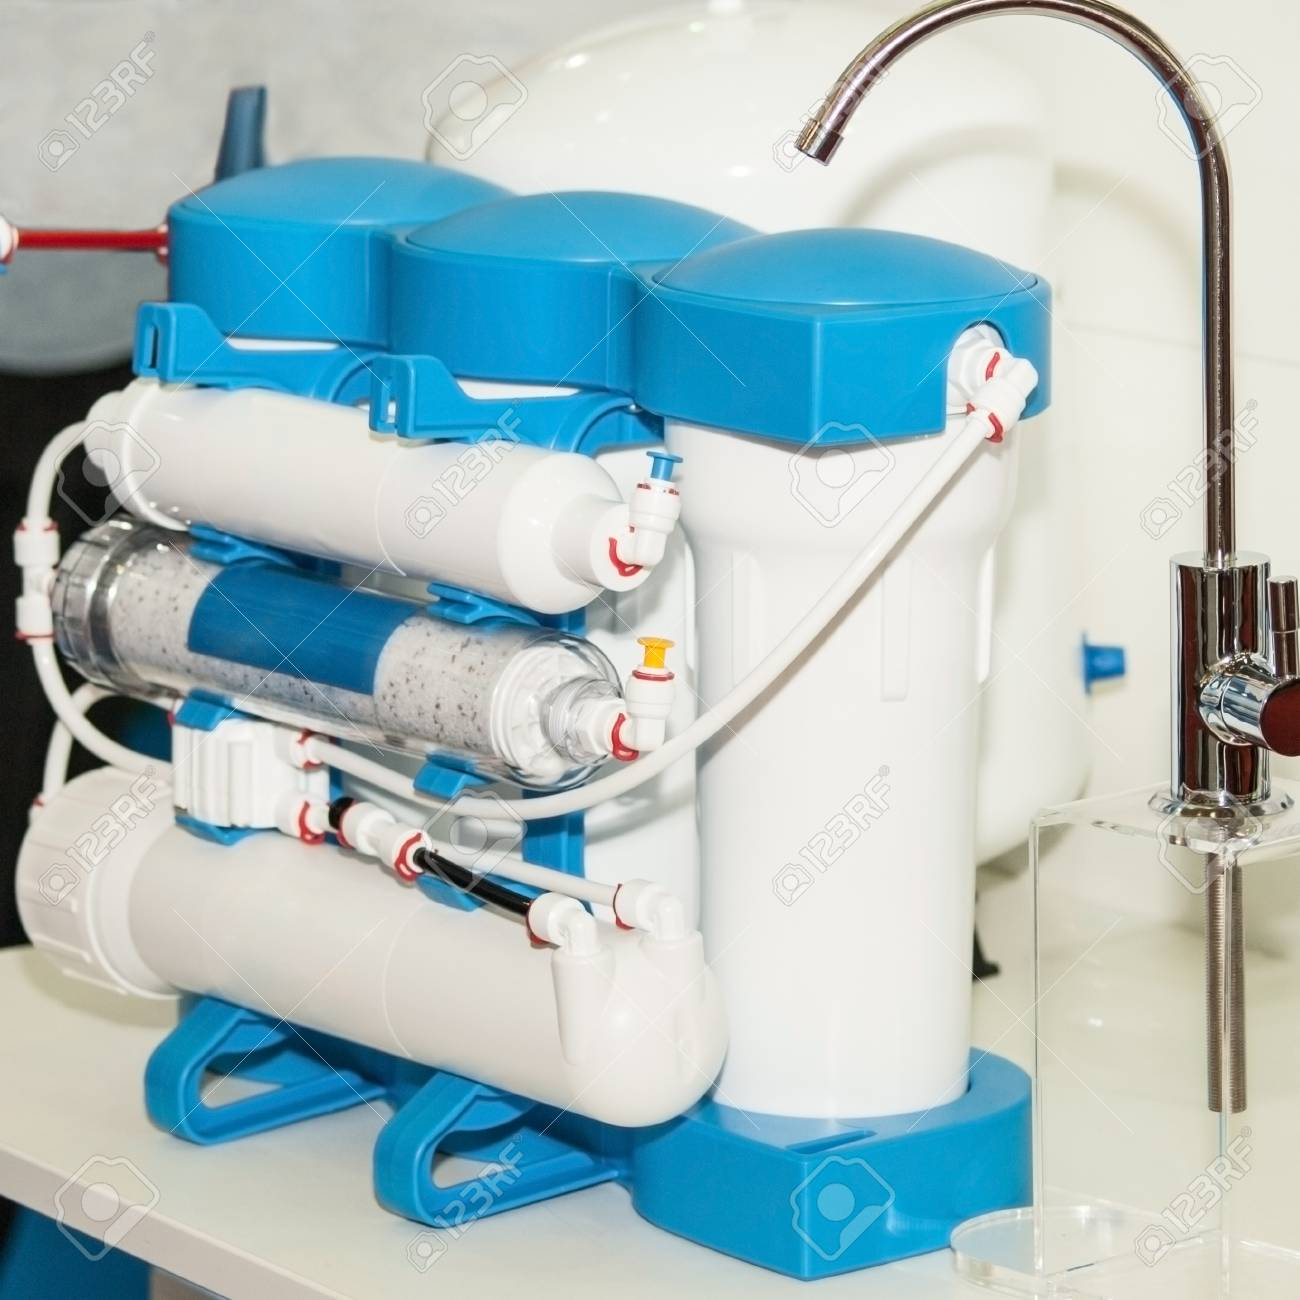 Water purification system. Domestic reverse osmosis filter - 118970276